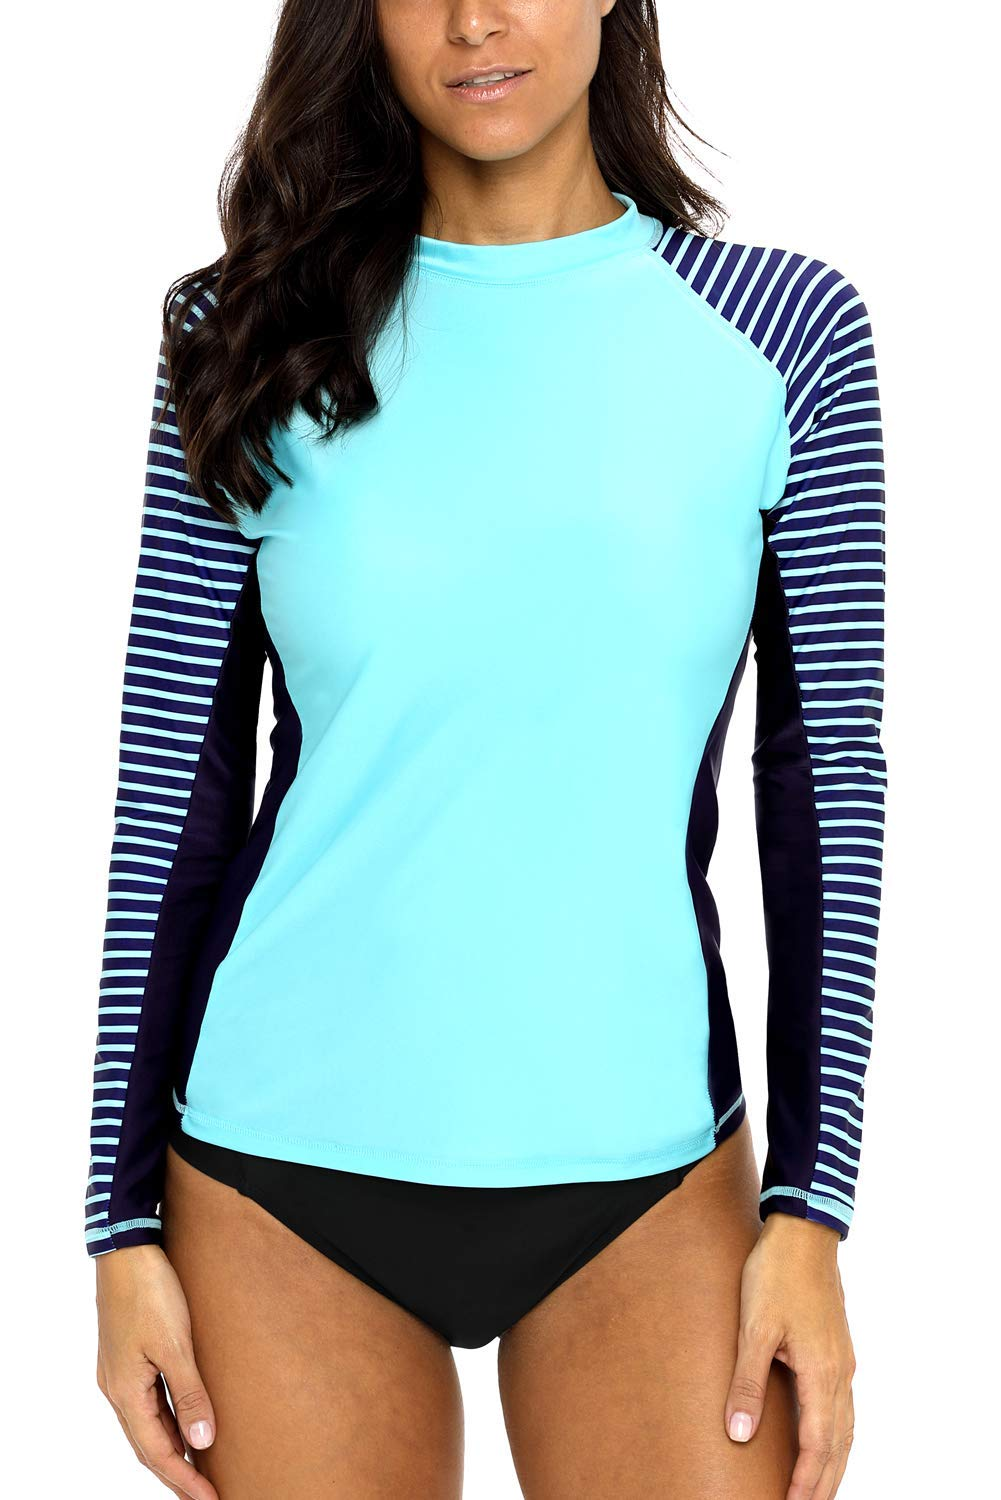 CharmLeaks Women's Rashguard Swimsuit UPF